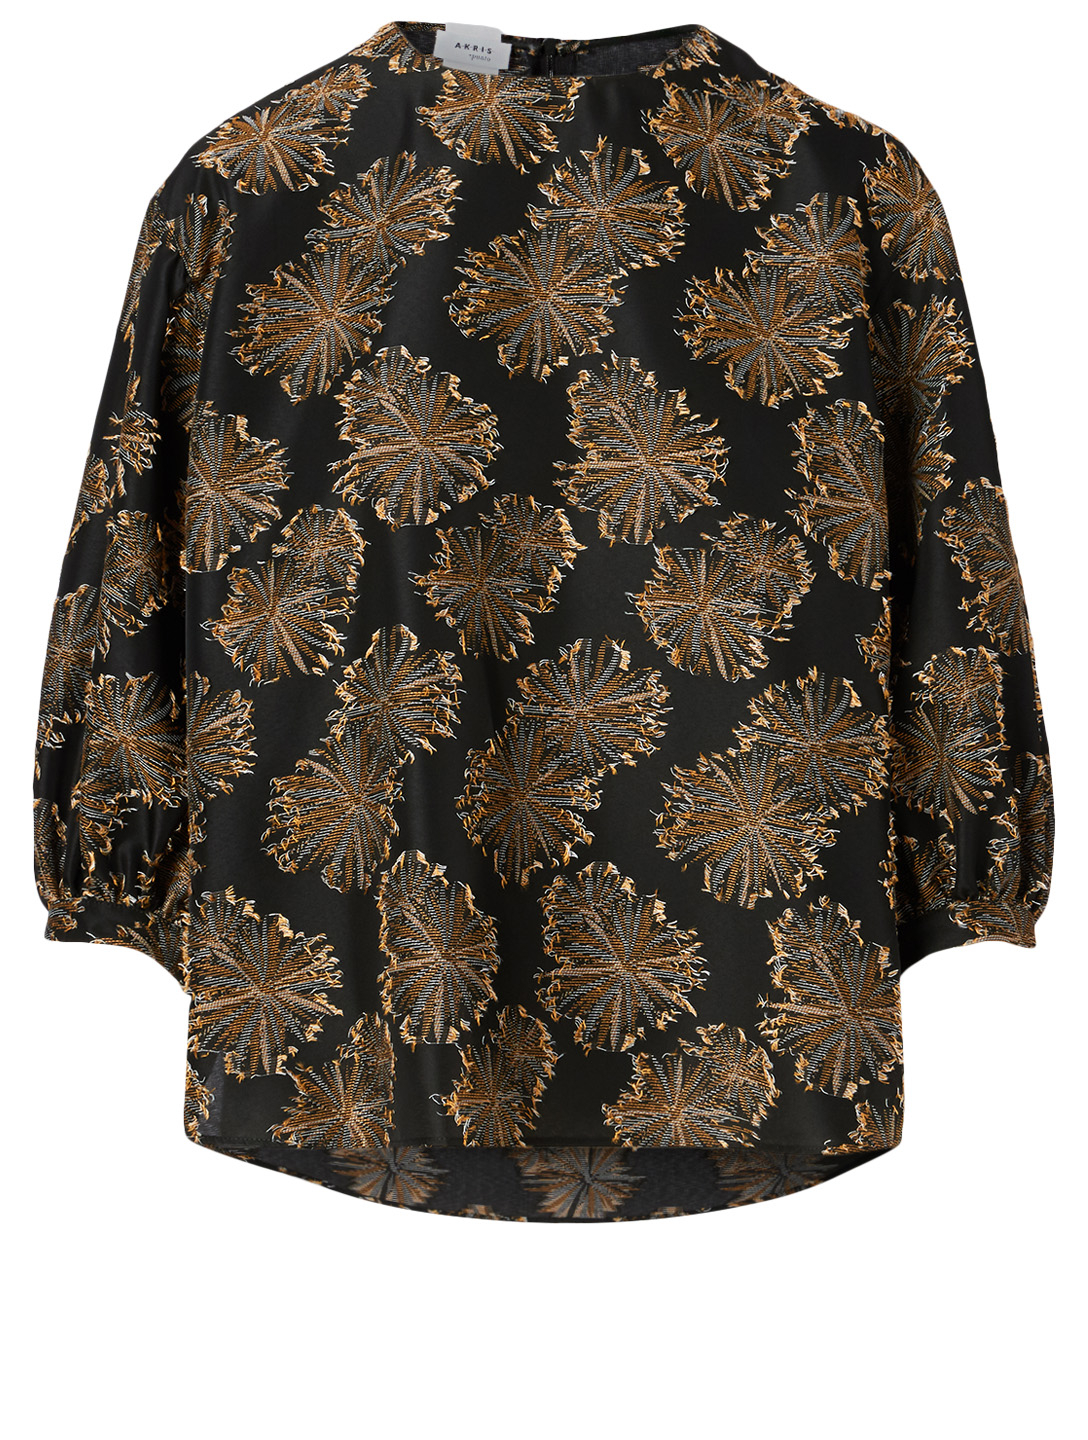 AKRIS PUNTO Roundneck Blouse In Floral Print Women's Black